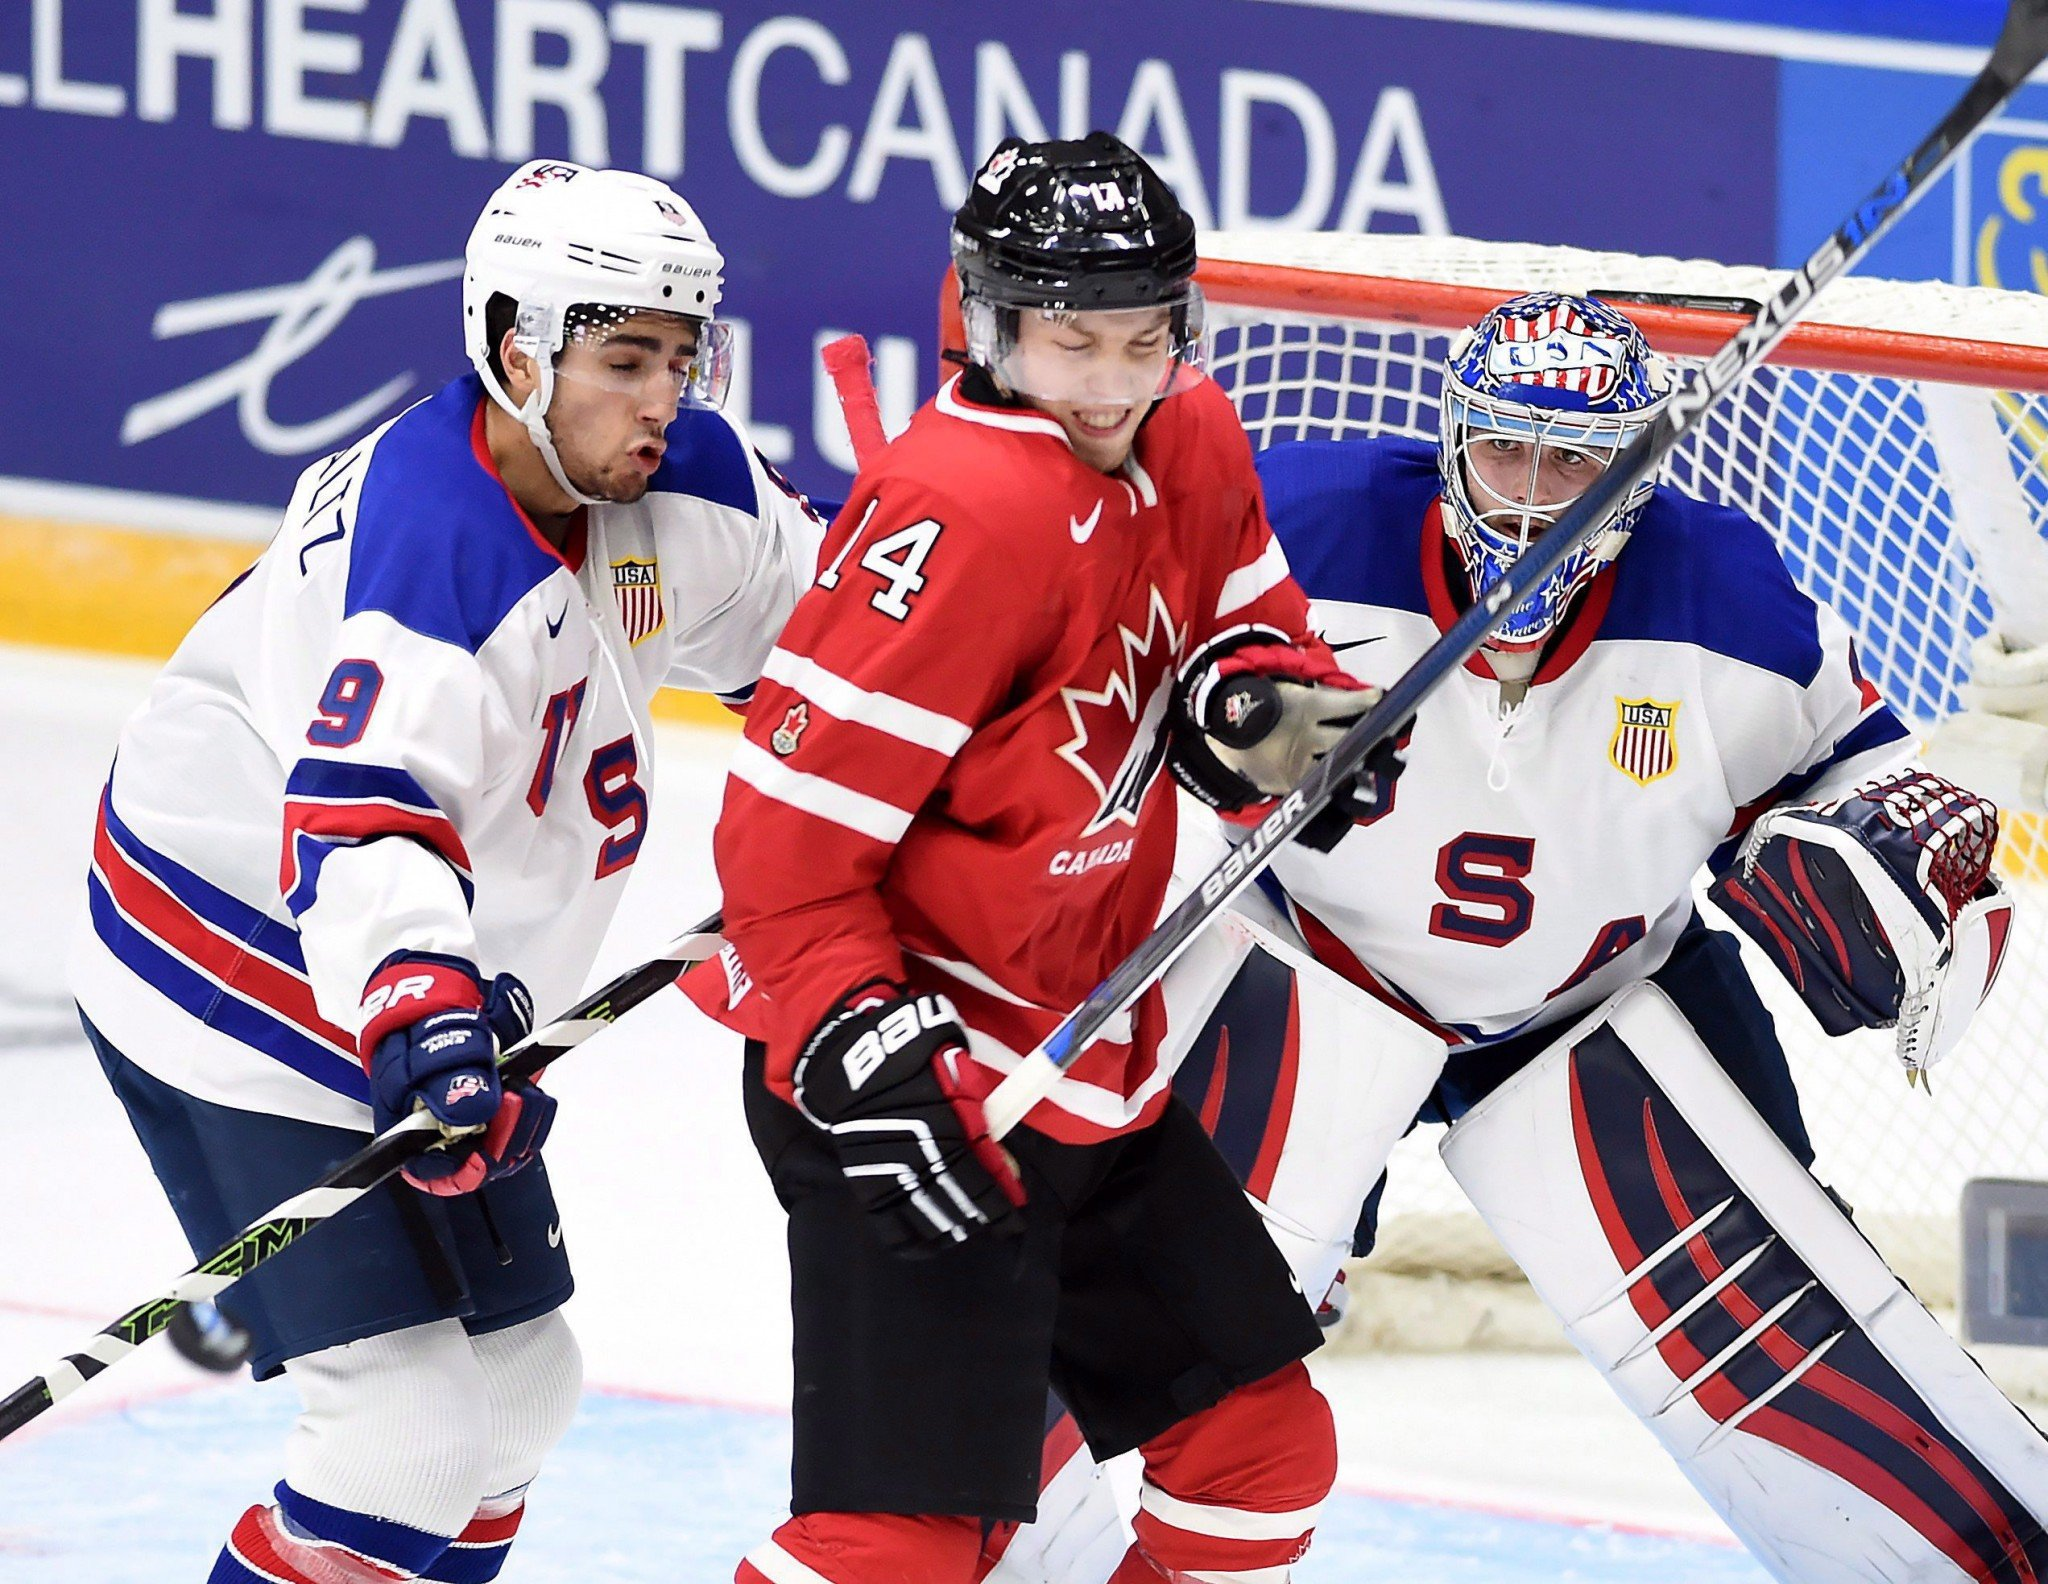 Canada's Rourke Chartier (14) takes a shot from a teammate as the United States' Nick Schmaltz (9) tries to check him away from the crease during the 2016 world junior championship in Helsinki, Finland. (THE CANADIAN PRESS)